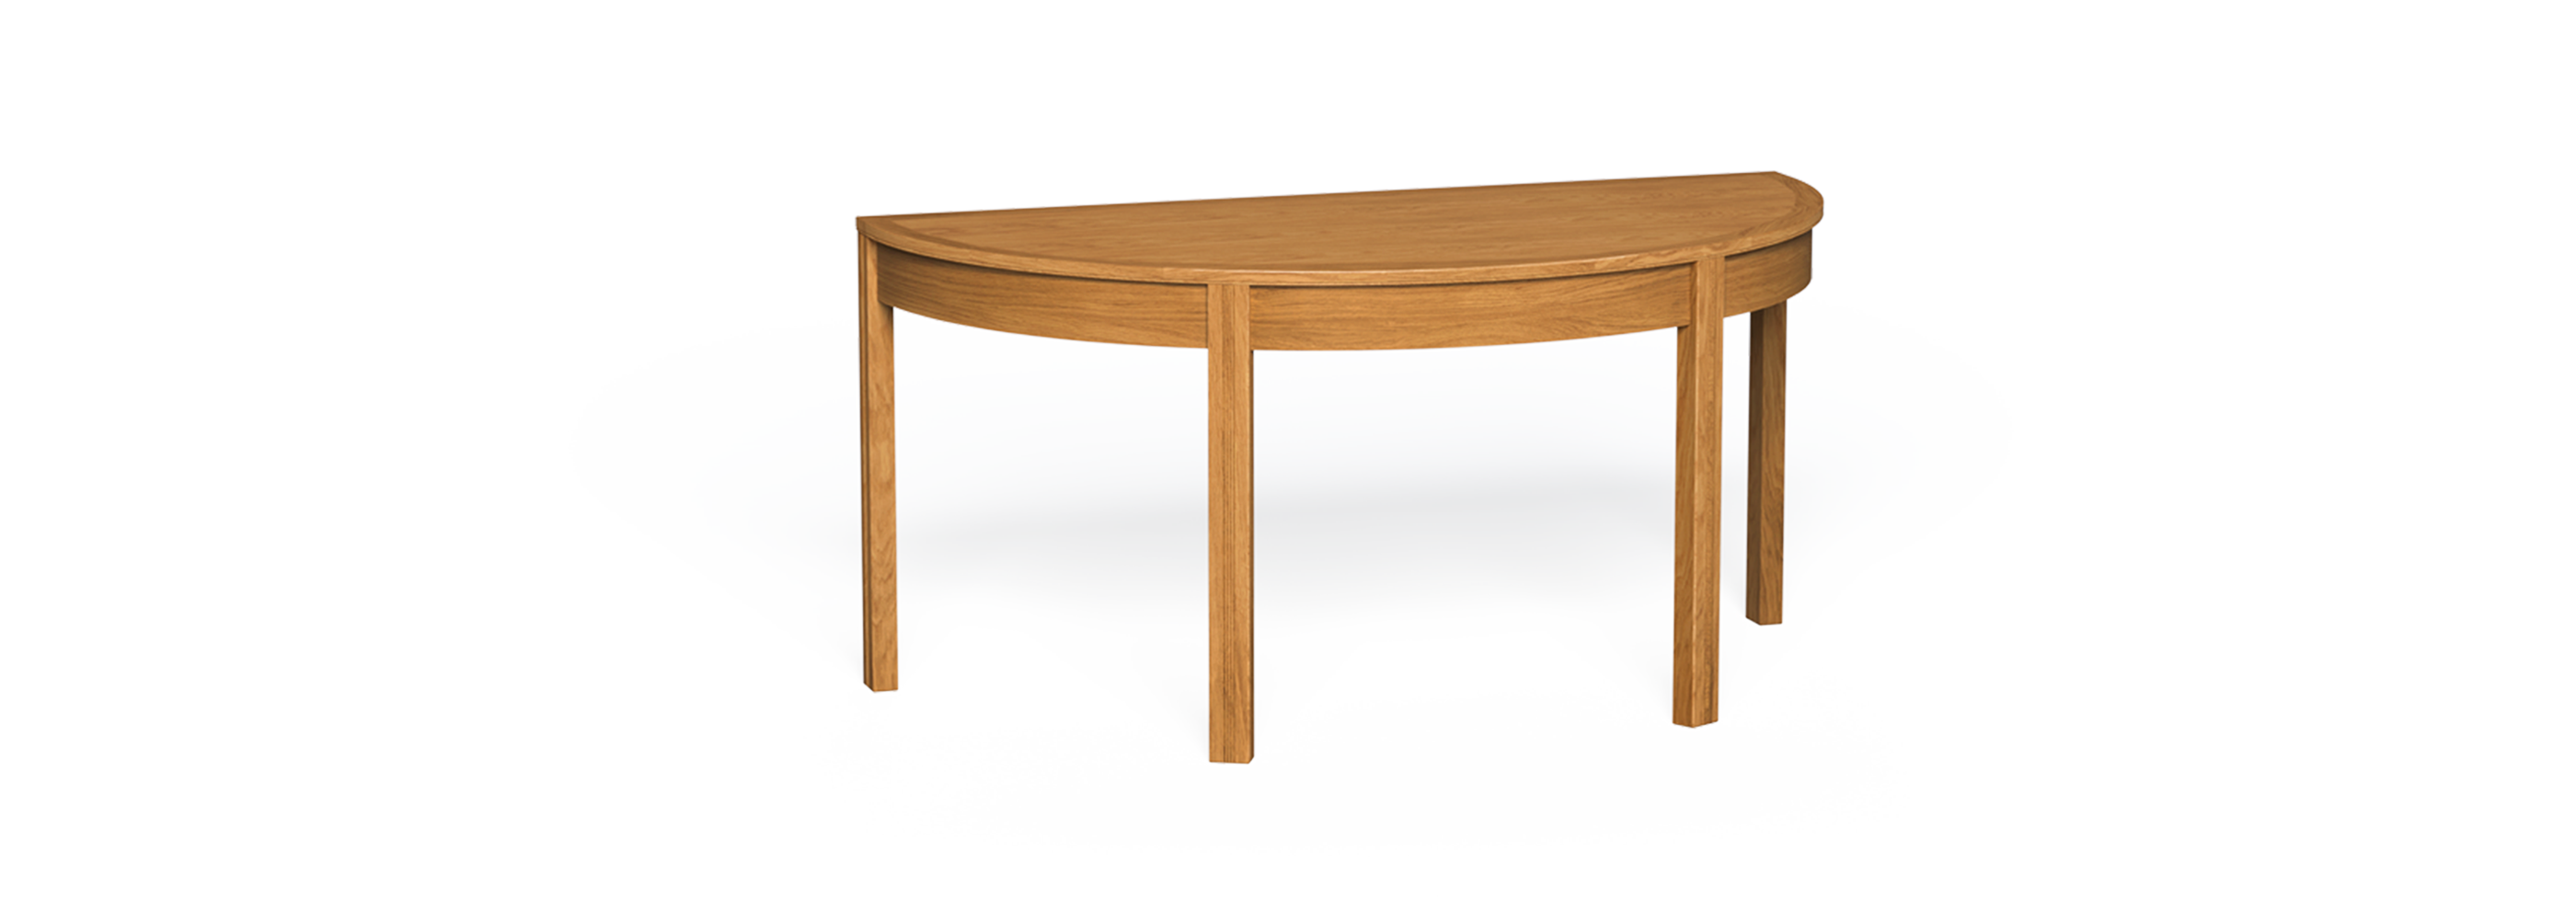 Minerva D-end timber table back